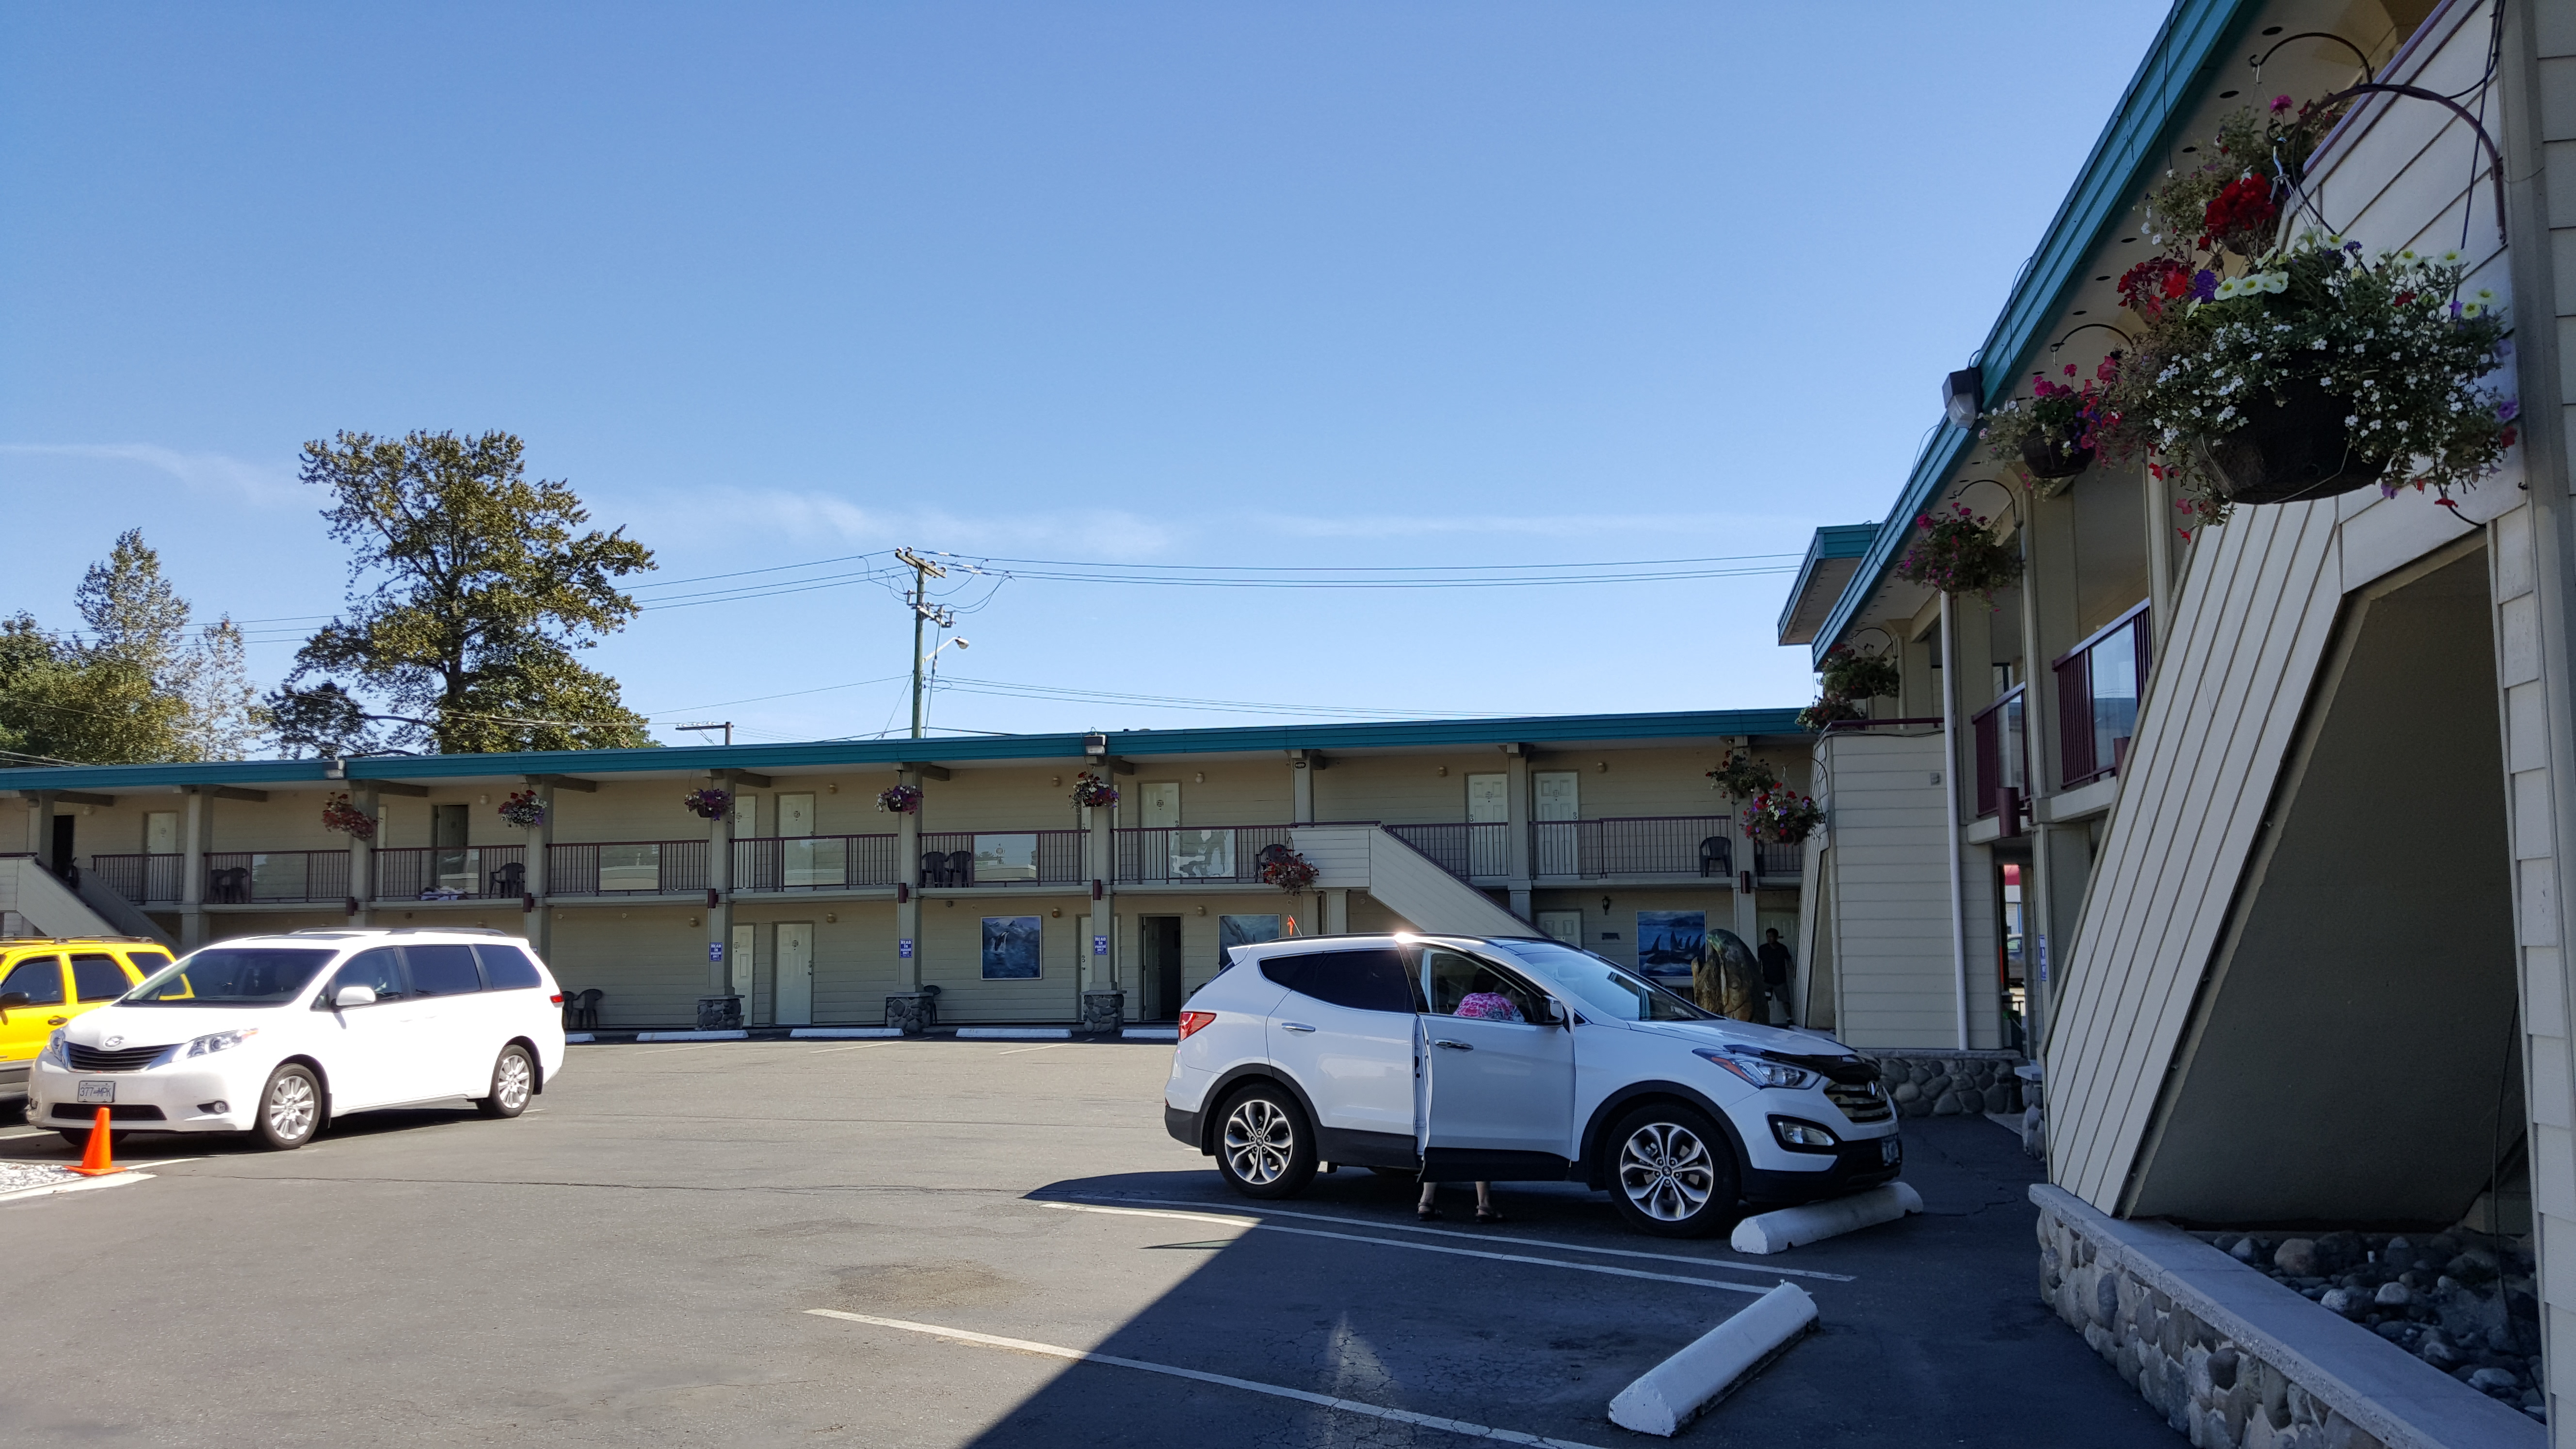 Motel for Mixed Use Multi Layer Development Potential